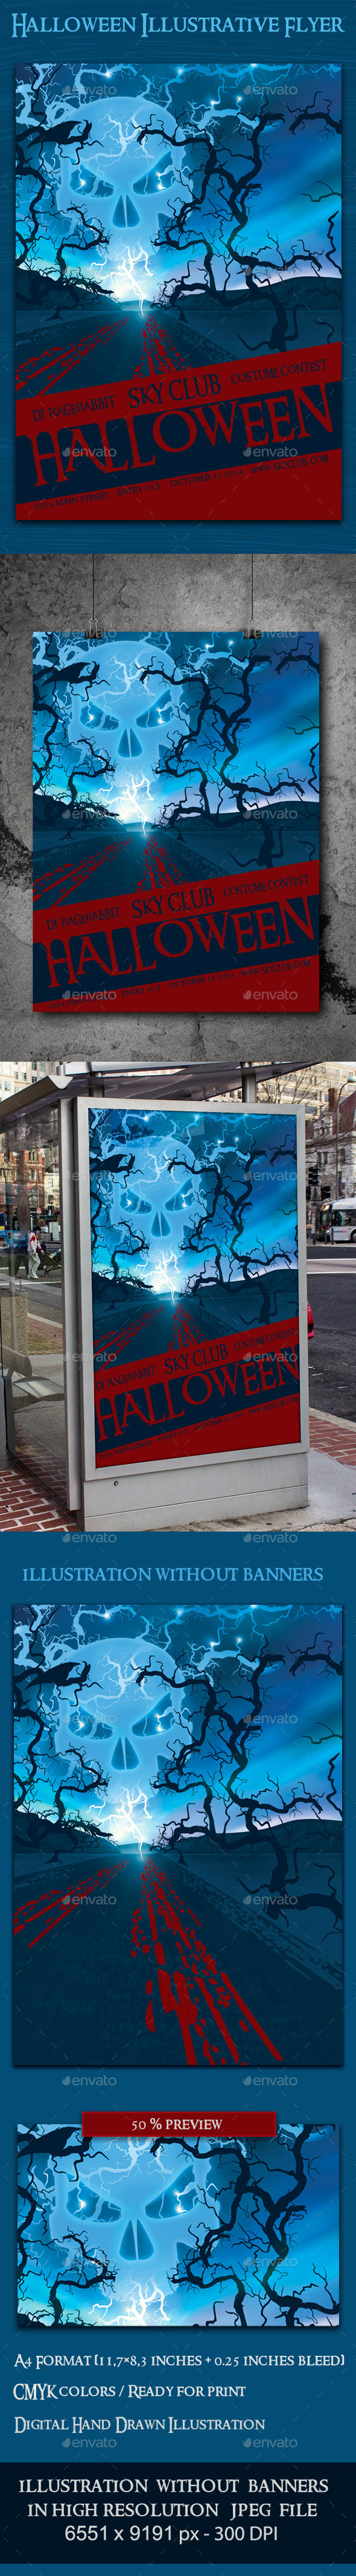 Halloween Illustrative Flyer Template